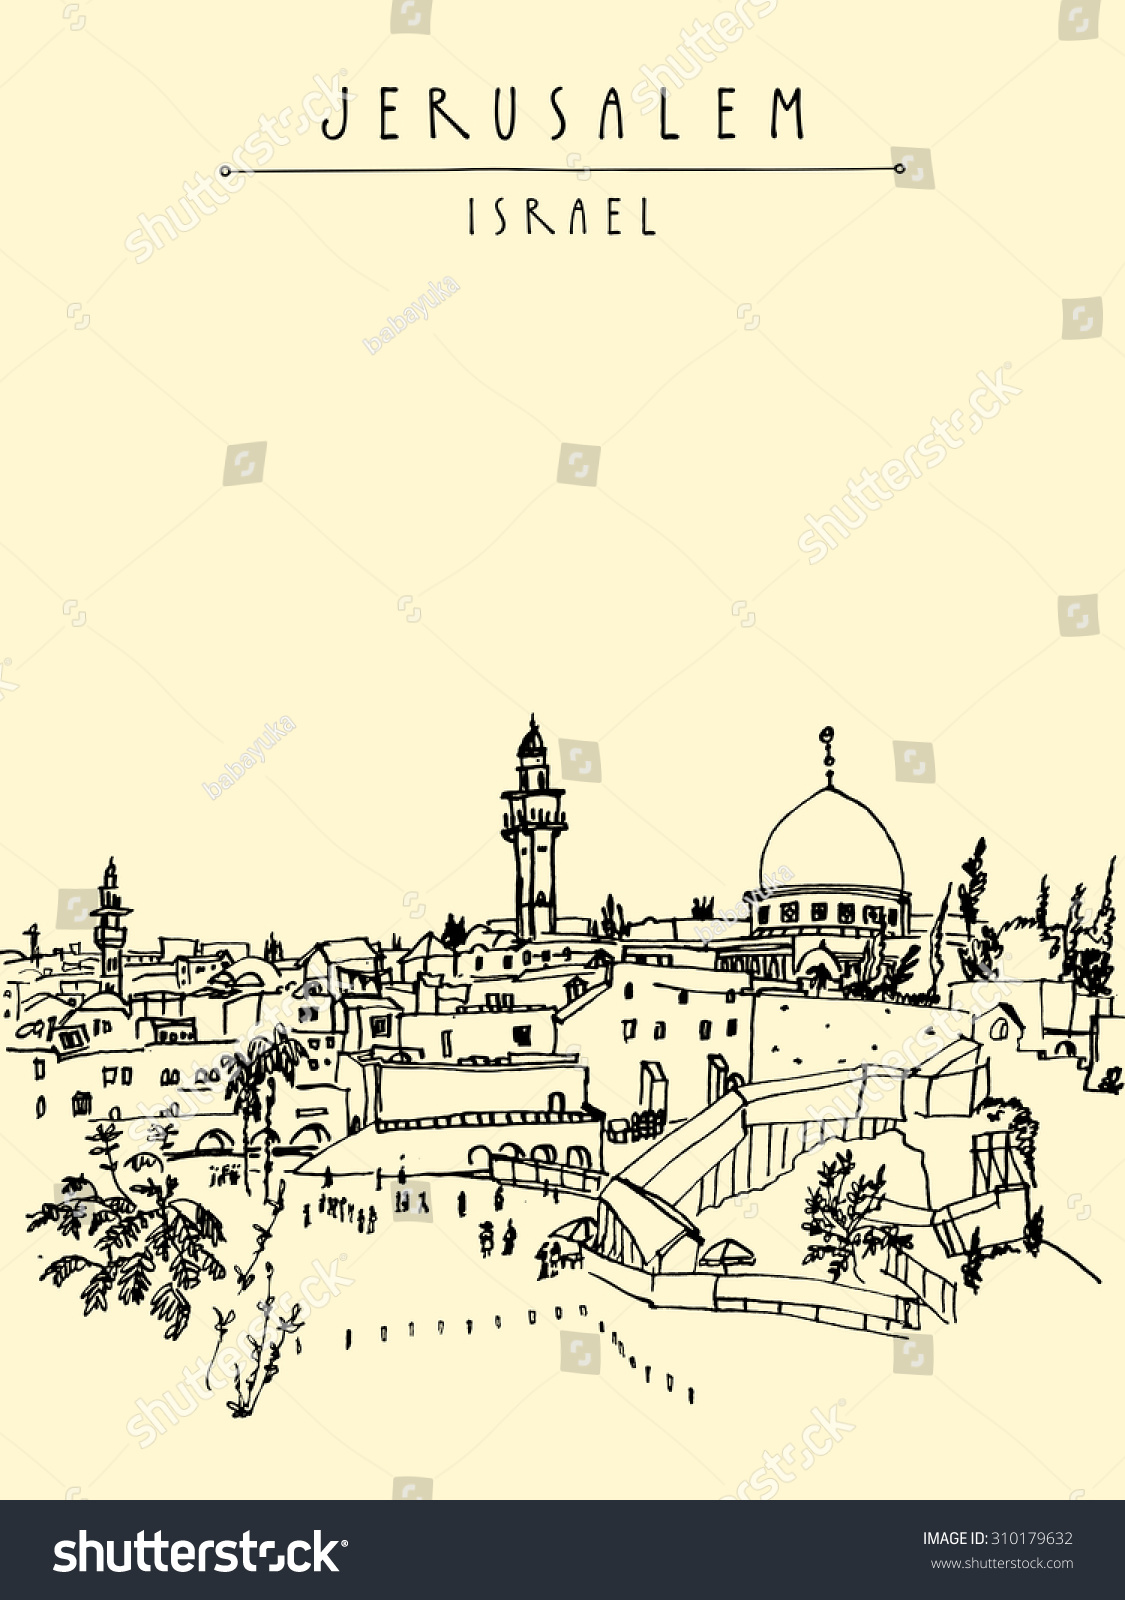 Jerusalem Israel old city skyline Wailing wall Handmade drawing isolated in vector Postcard or coloring book Freehand drawing Jerusalem city view background with Jerusalem Israel hand lettering